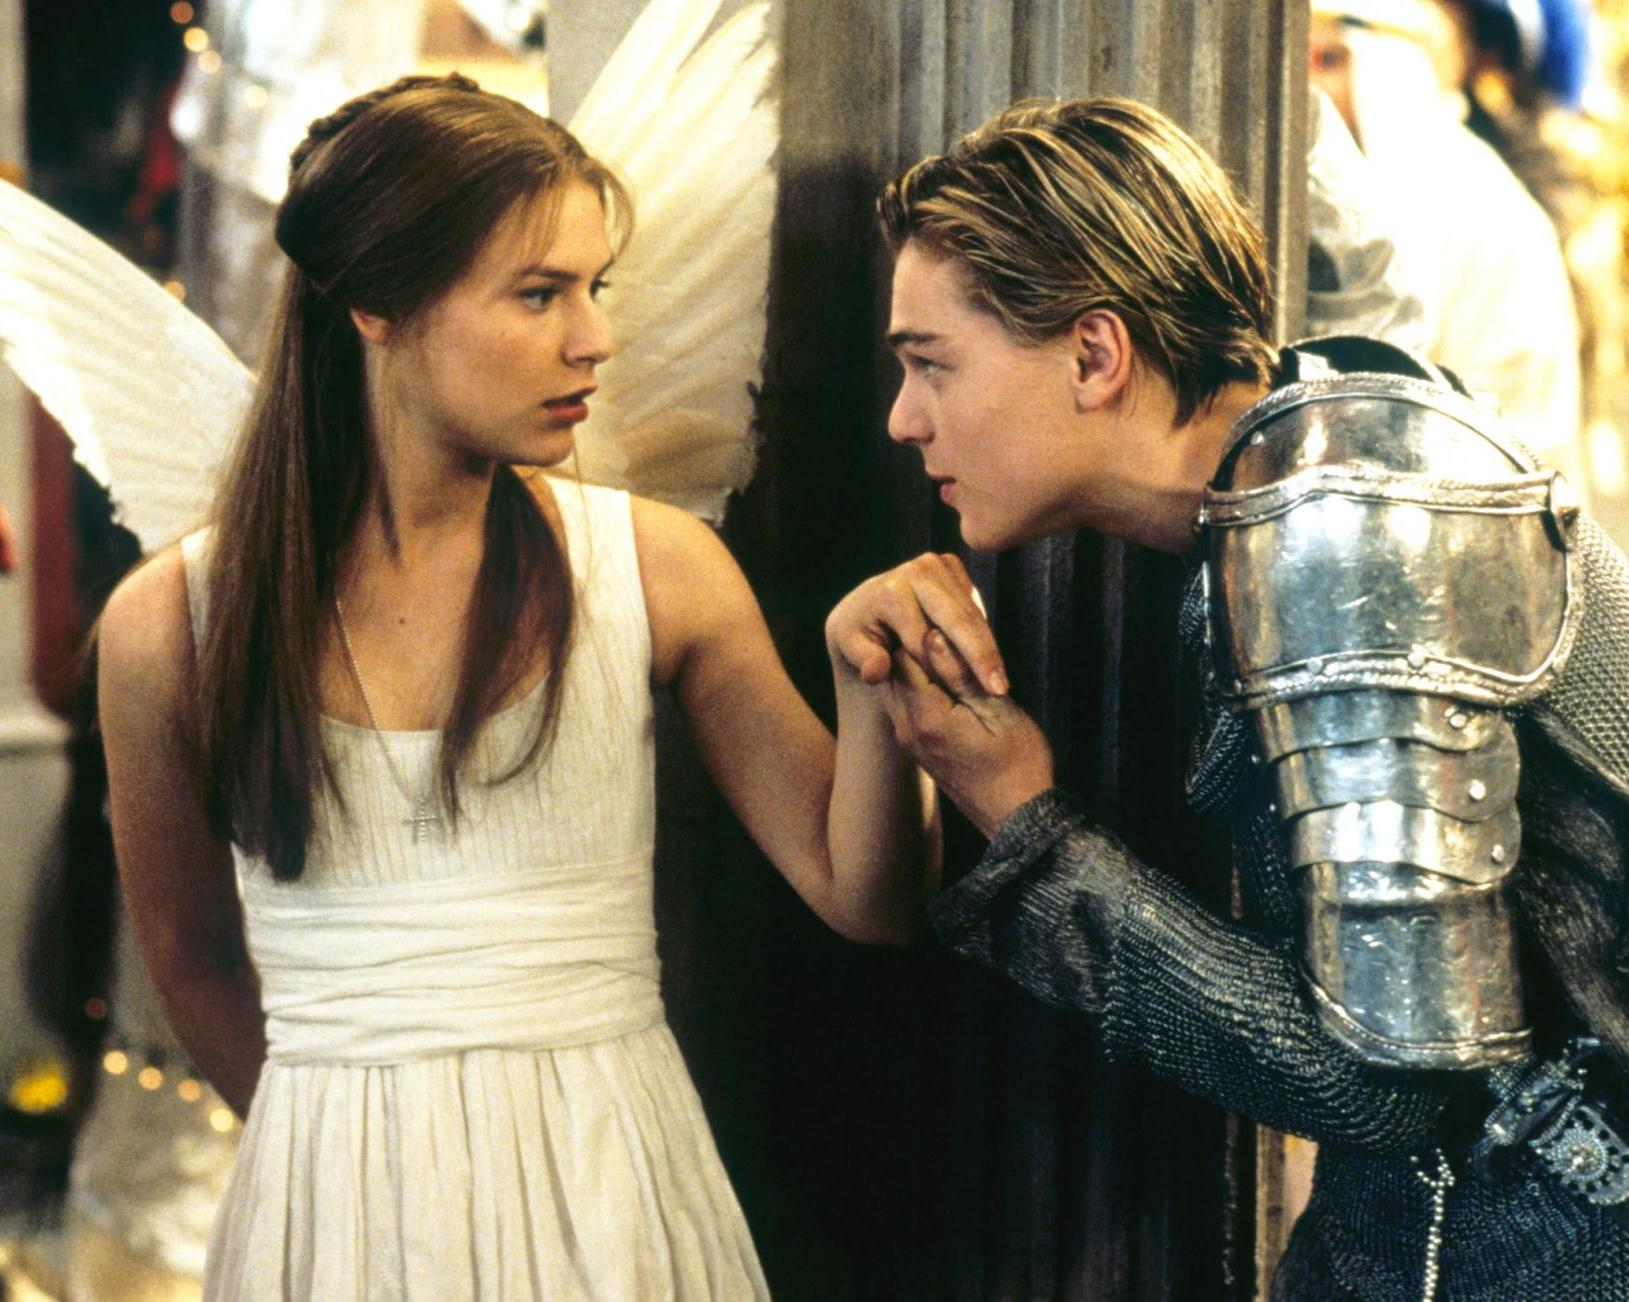 Claire Danes as Juliet and Leonardo DiCaprio as Romeo in Romeo + Juliet (1996)